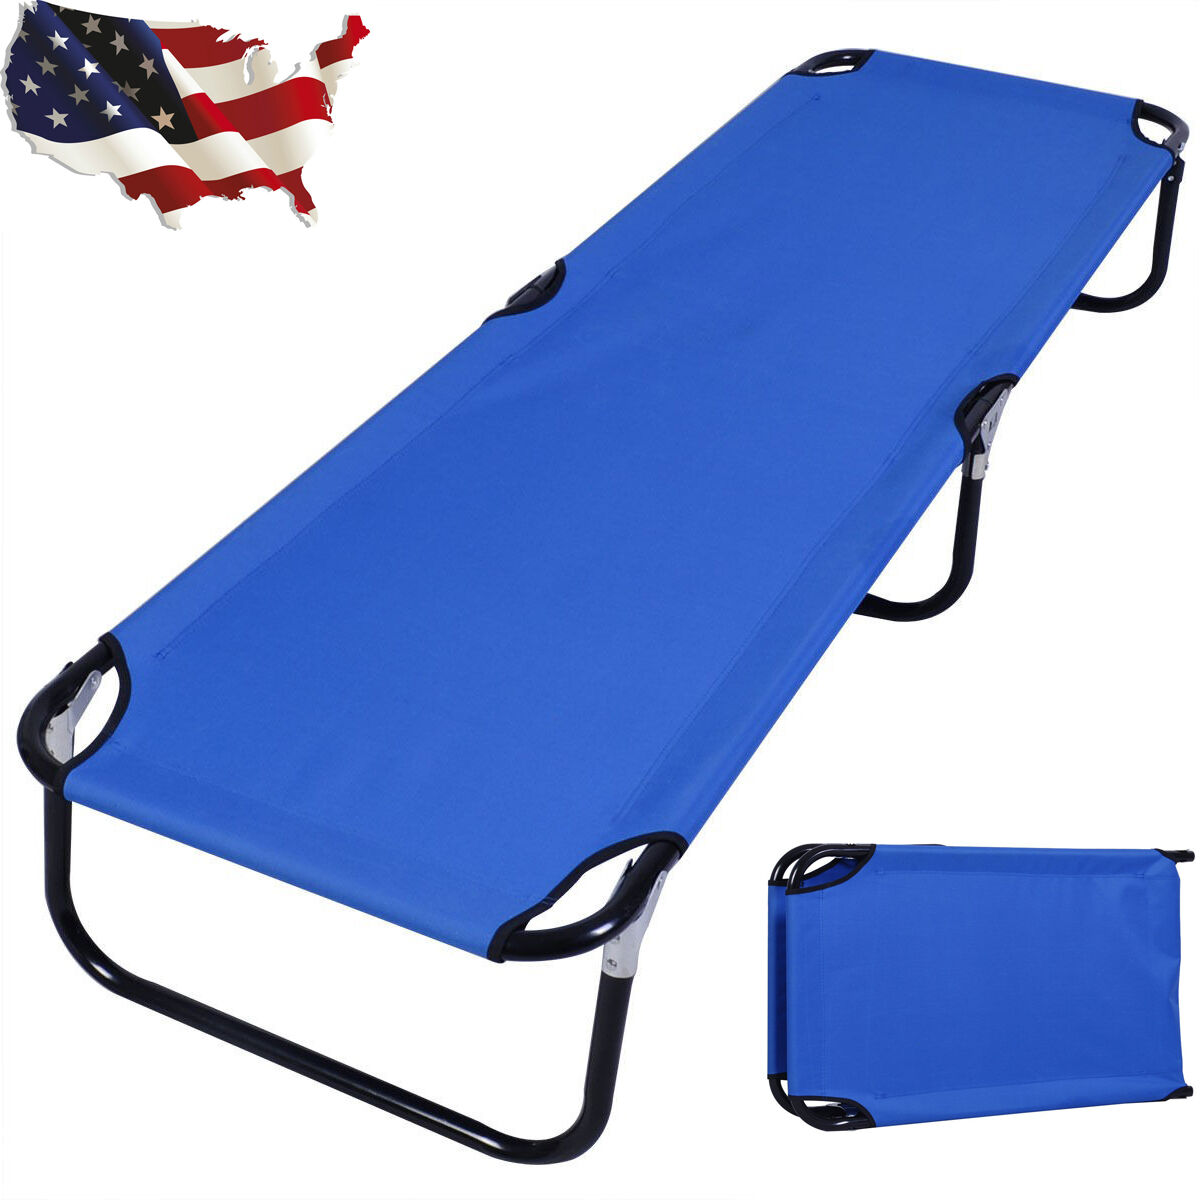 Portable Folding Camping  Bed Outdoor Military Cot Sleeping Hiking Travel bluee US  store sale outlet